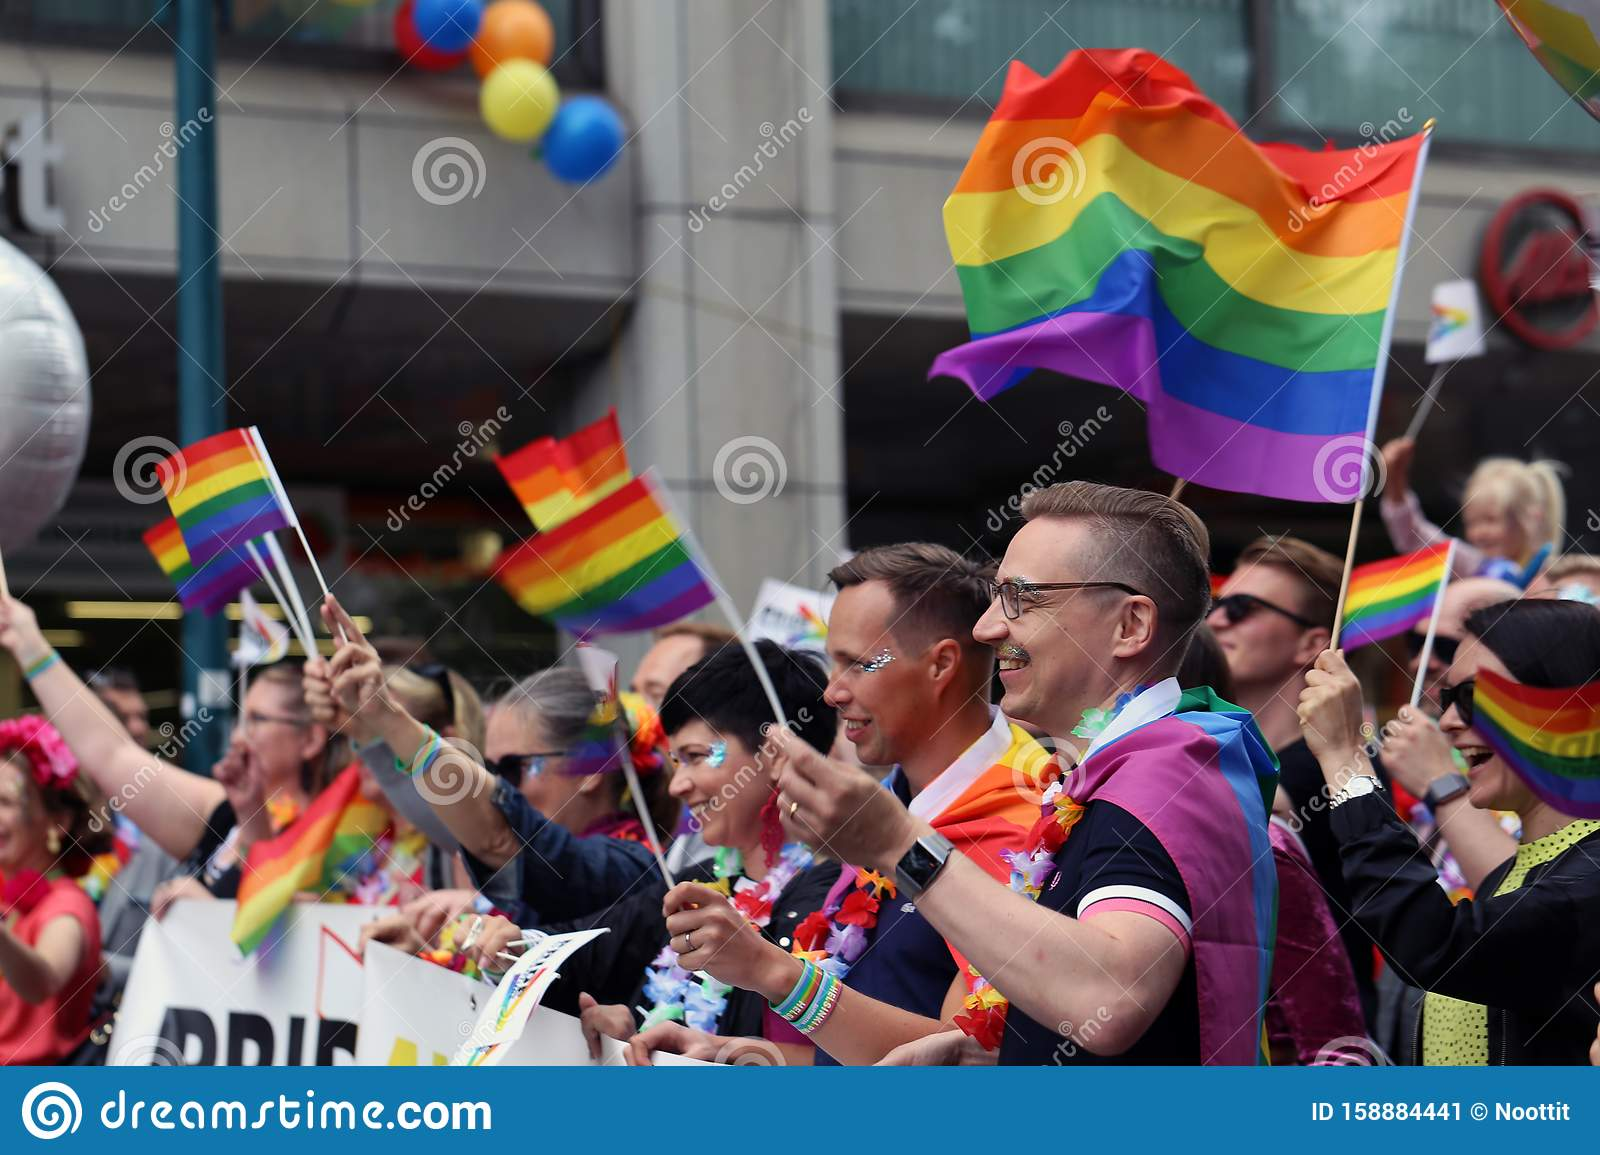 Pride Parade of Helsinki 2019: Rainbow Colored Flags and Accessories